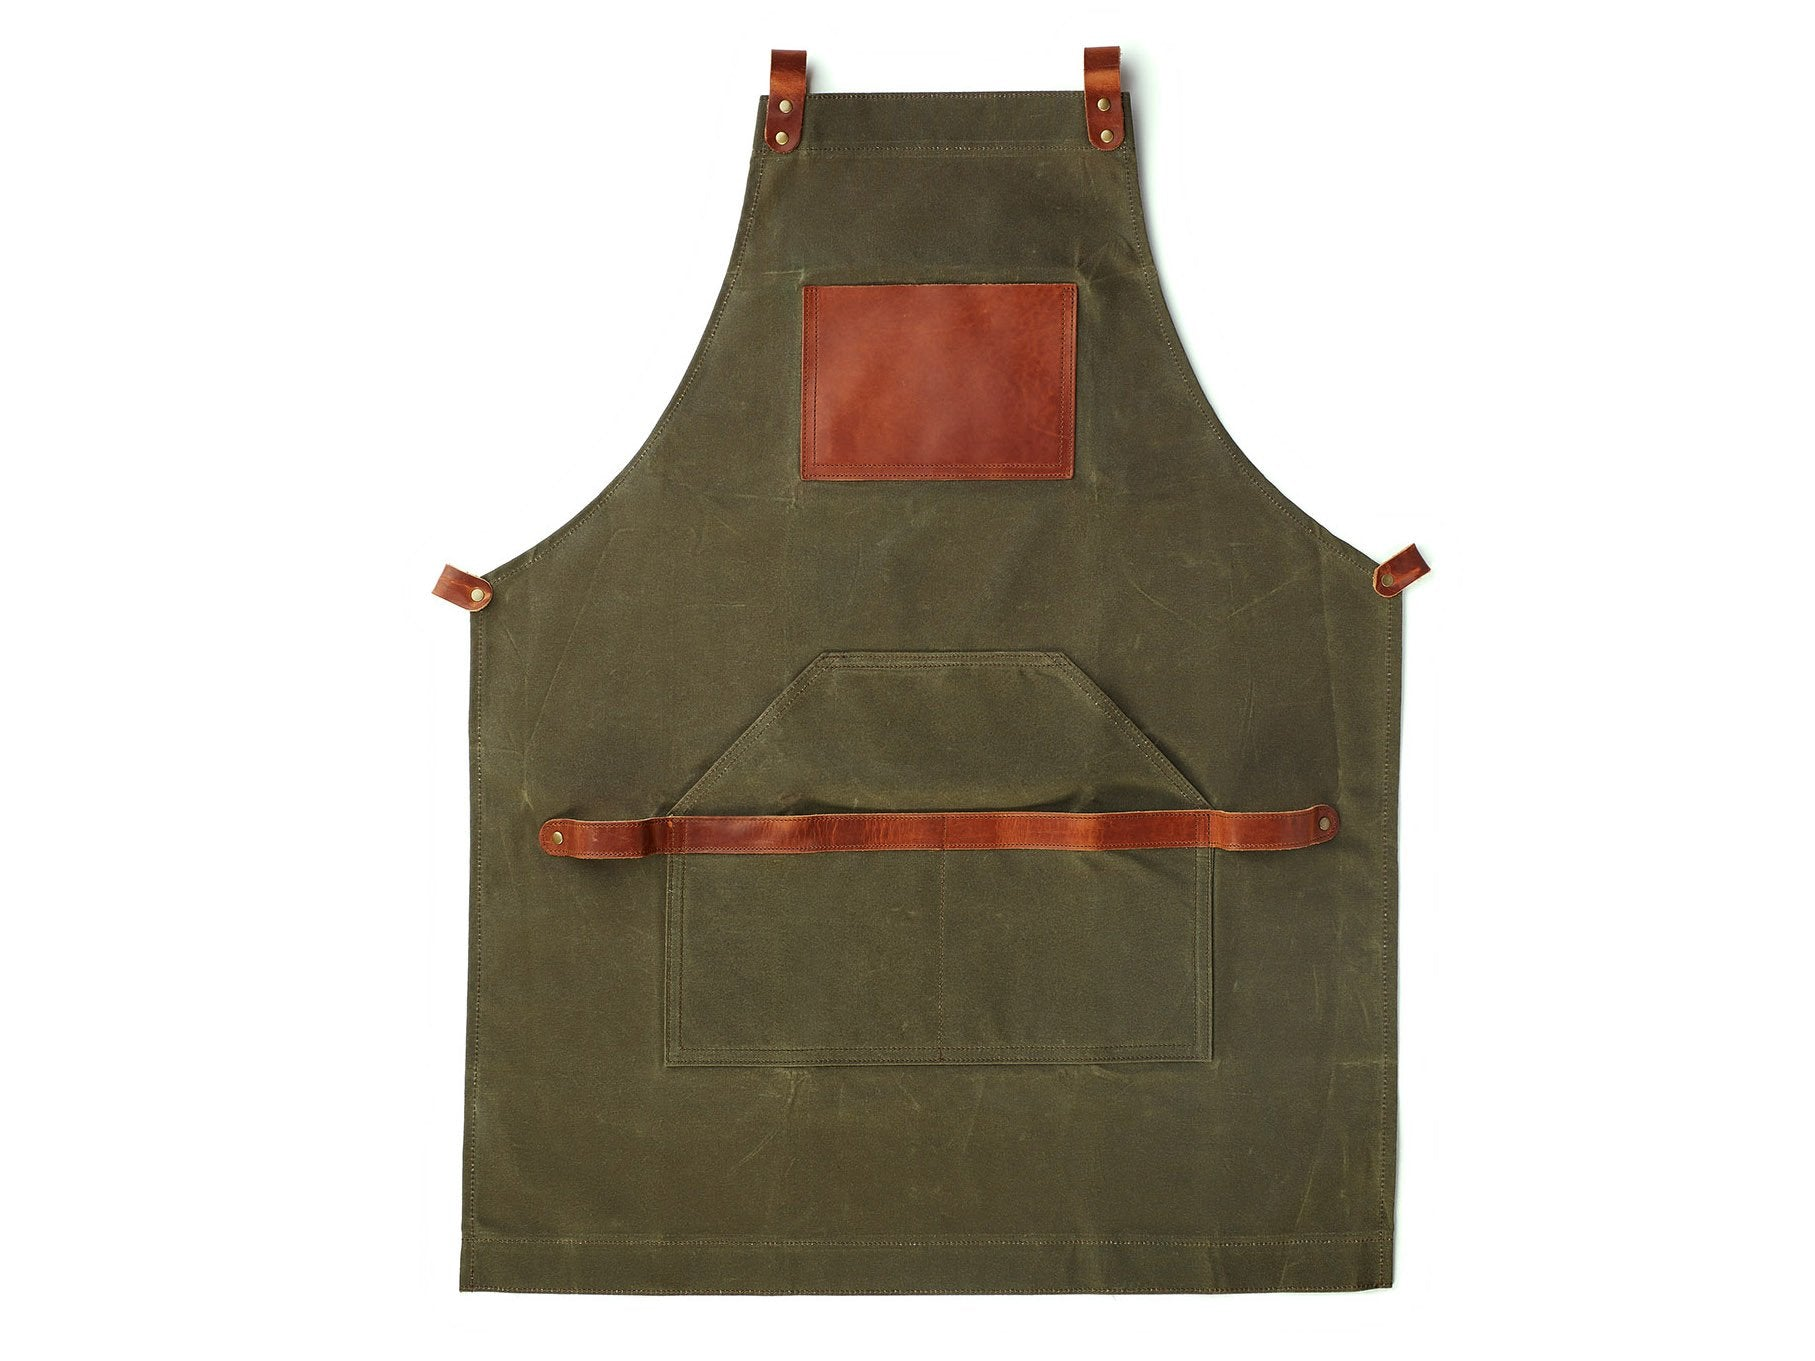 Details about Woodworking Shop Apron Heavy Waxed Canvas Brown ...